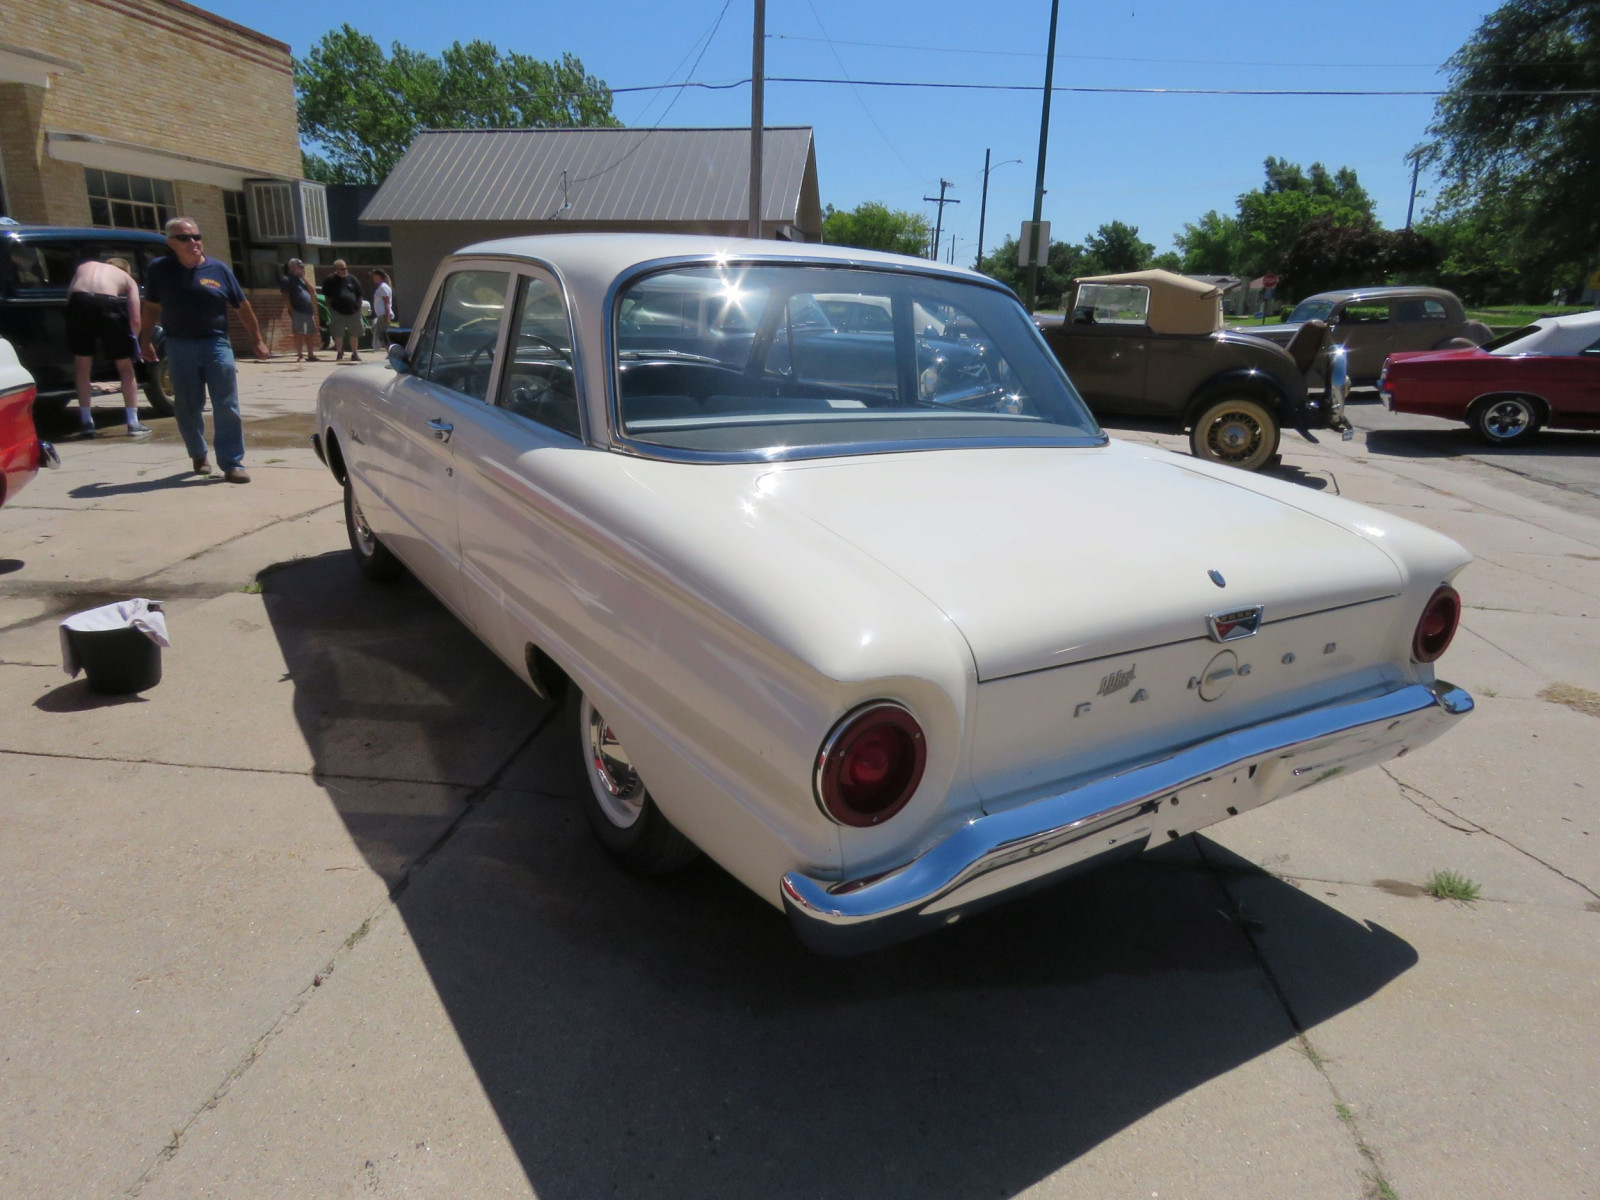 1961 FORD FALCON 2DR SEDAN LESS THAN 10,000 MILES - Image 5